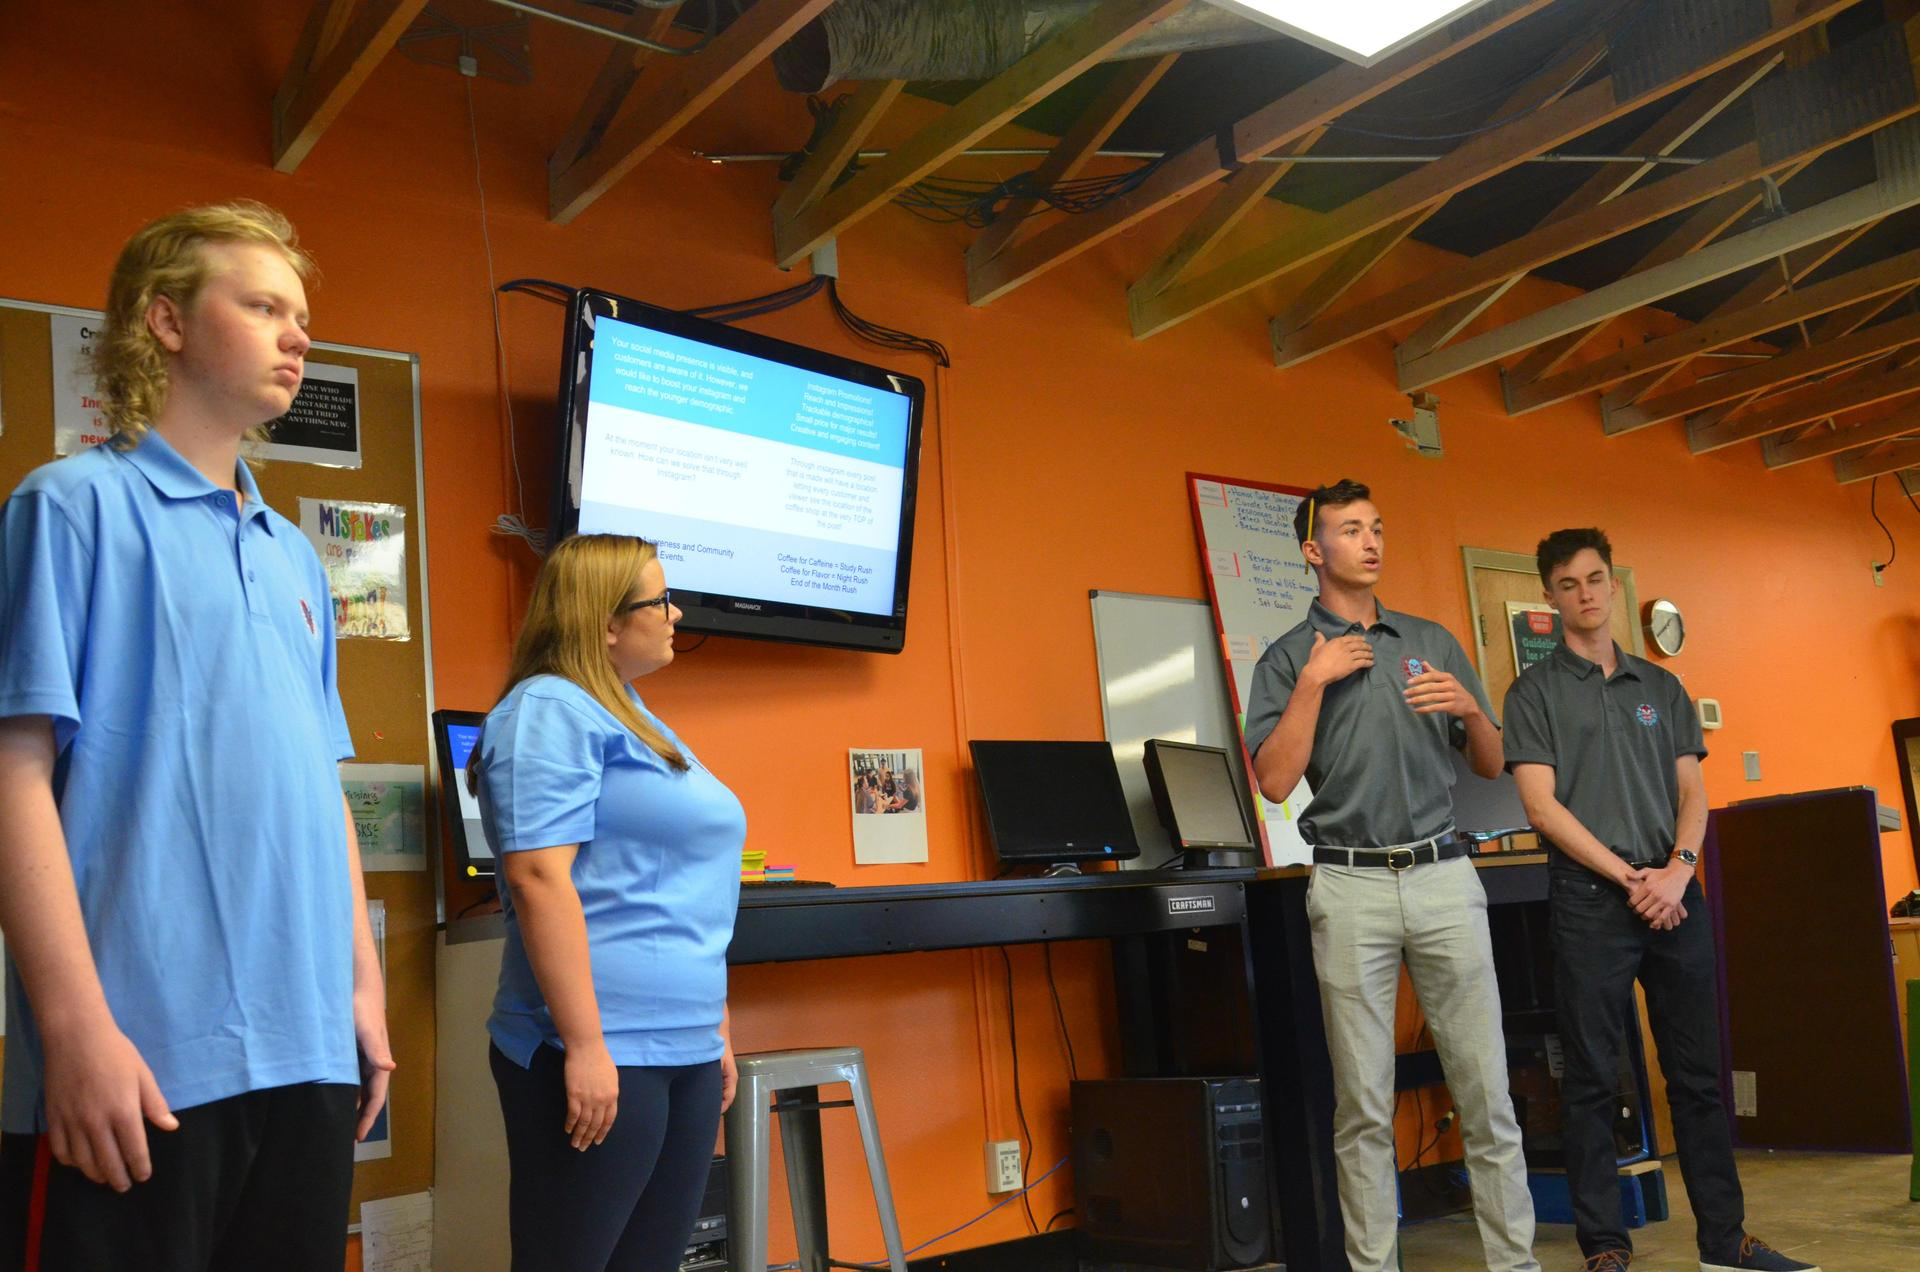 Four upper school students present their project to the class